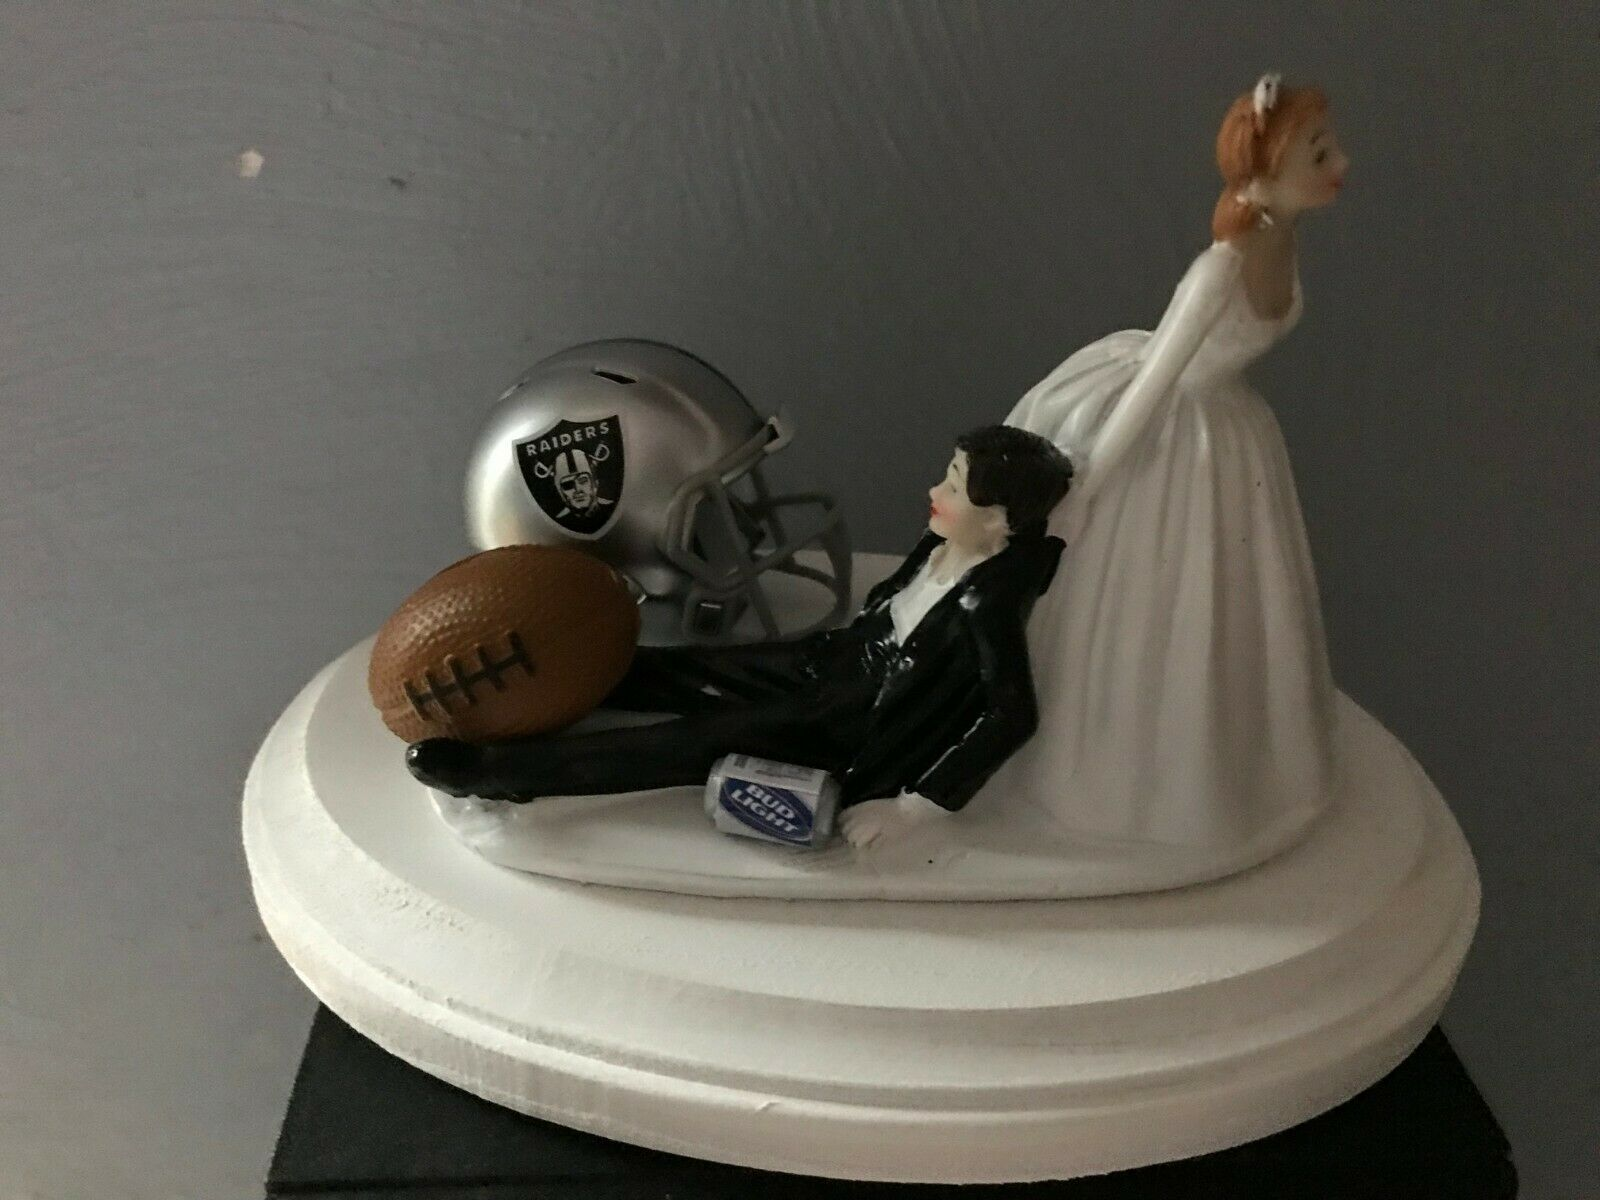 Oakland Raiders Cake Topper Bride Groom Wedding day Funny Football Theme